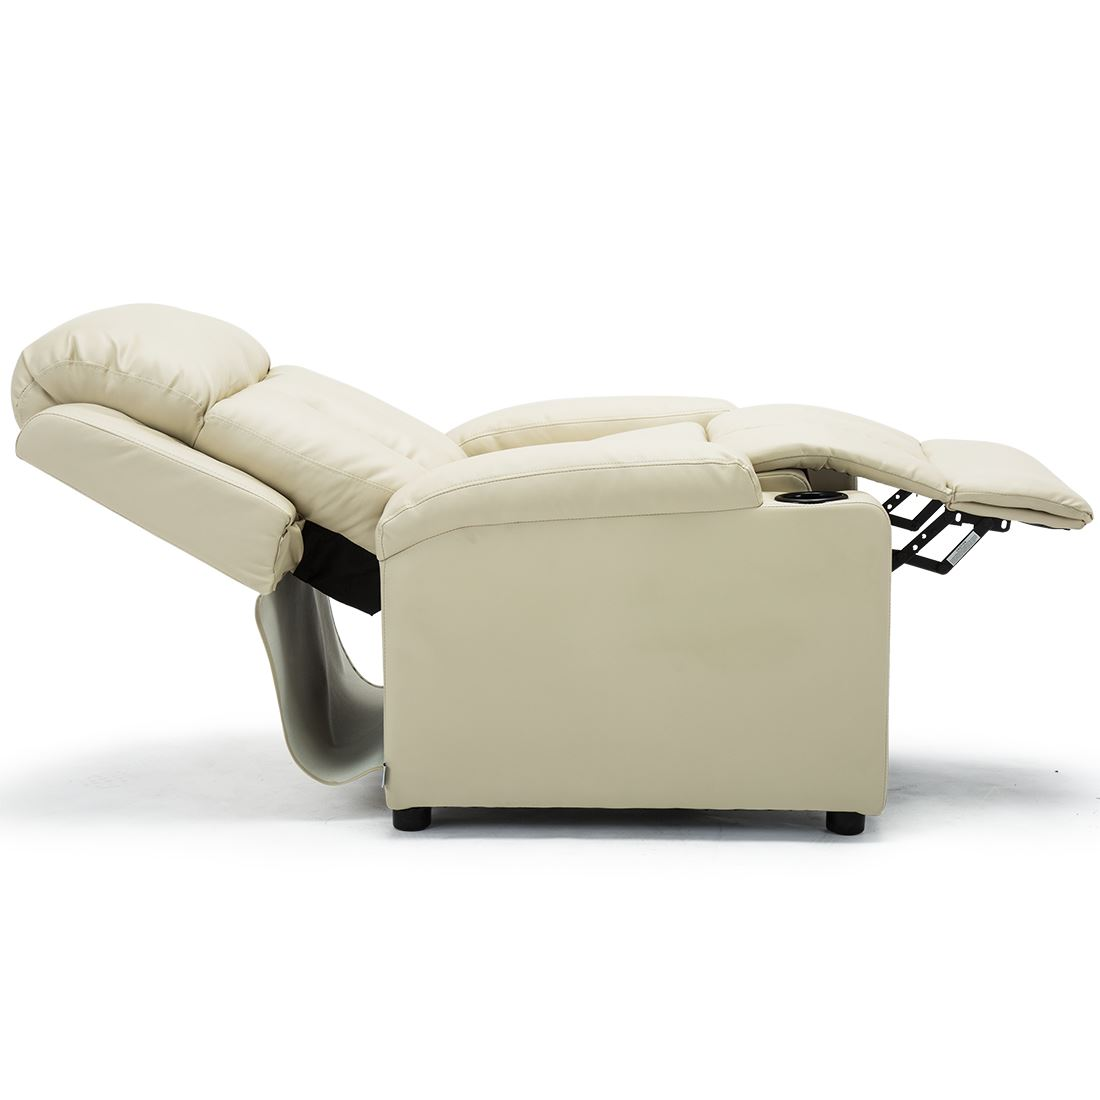 STUDIO-LEATHER-RECLINER-w-DRINK-HOLDERS-ARMCHAIR-SOFA-CHAIR-CINEMA-GAMING thumbnail 24